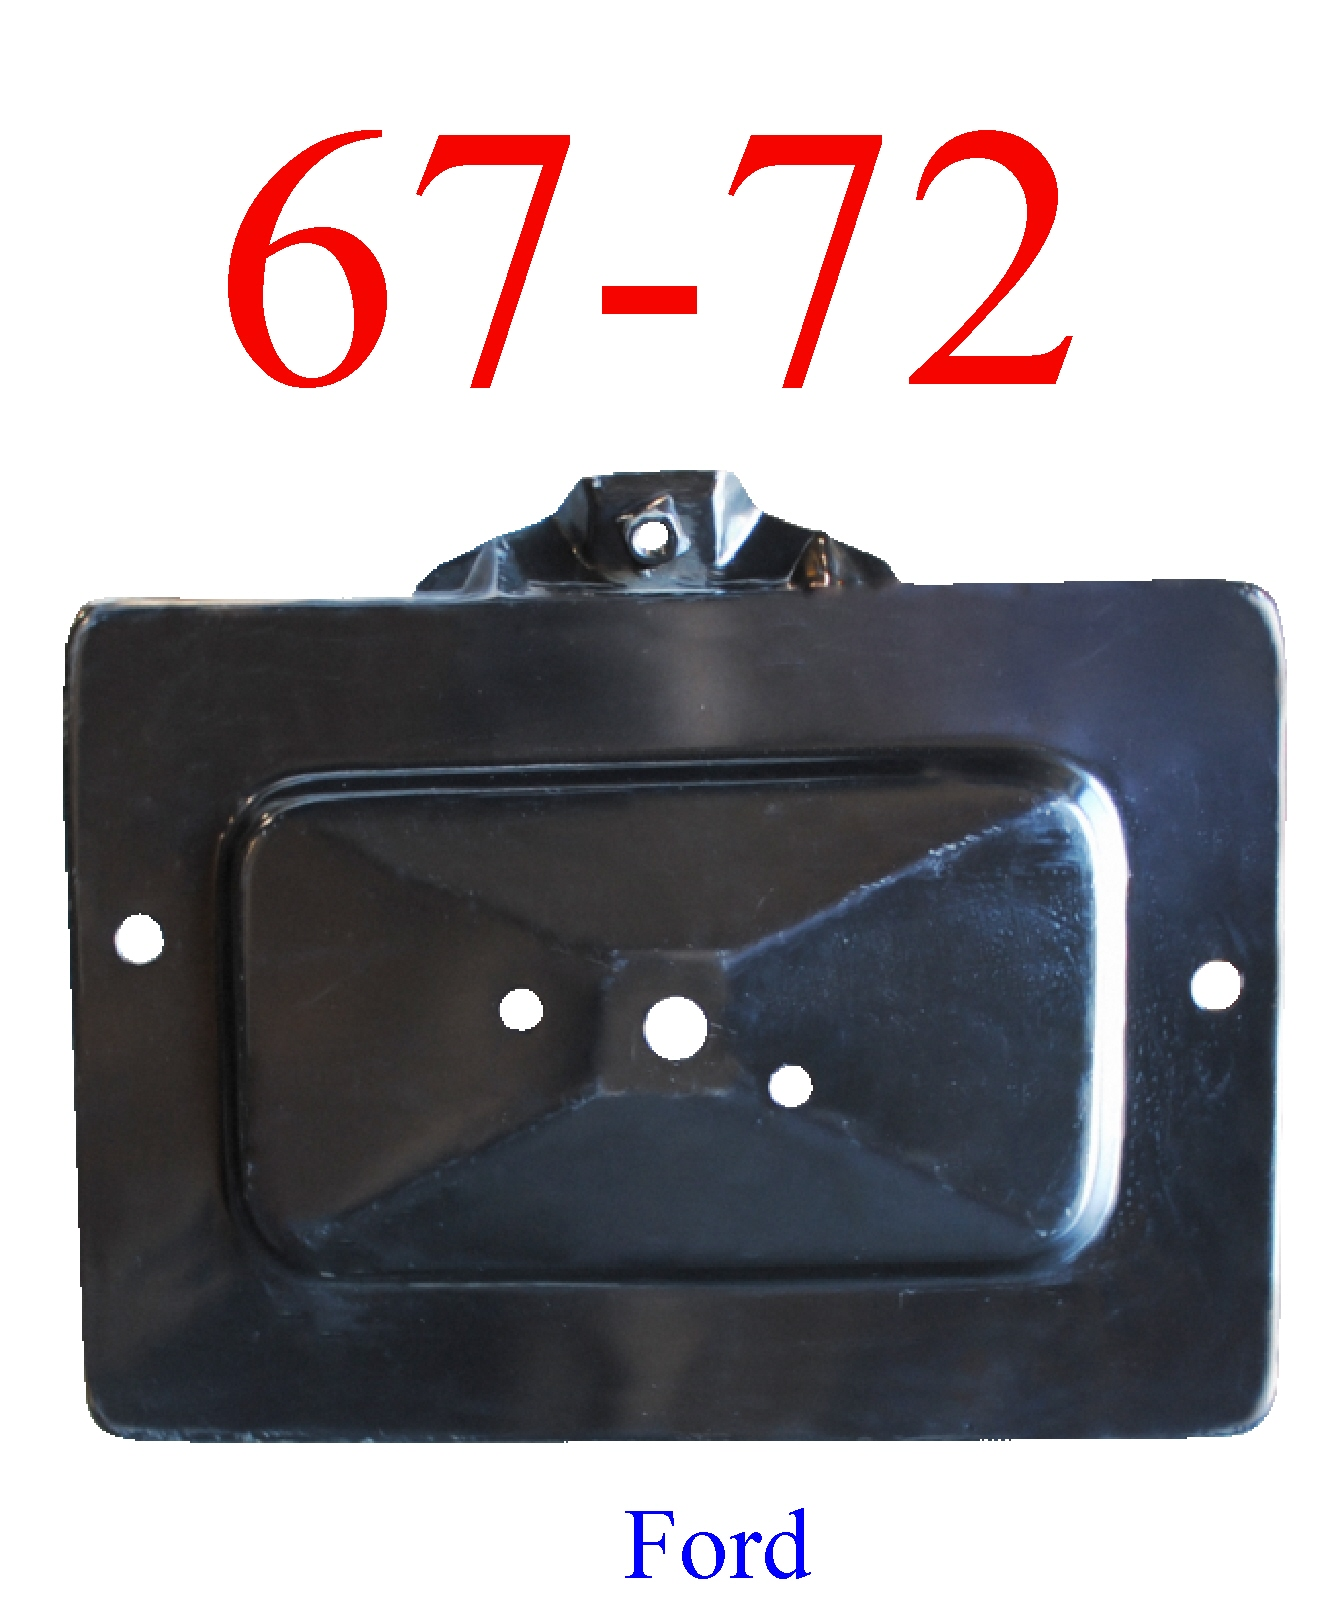 67-72 Ford Battery Tray Bottom